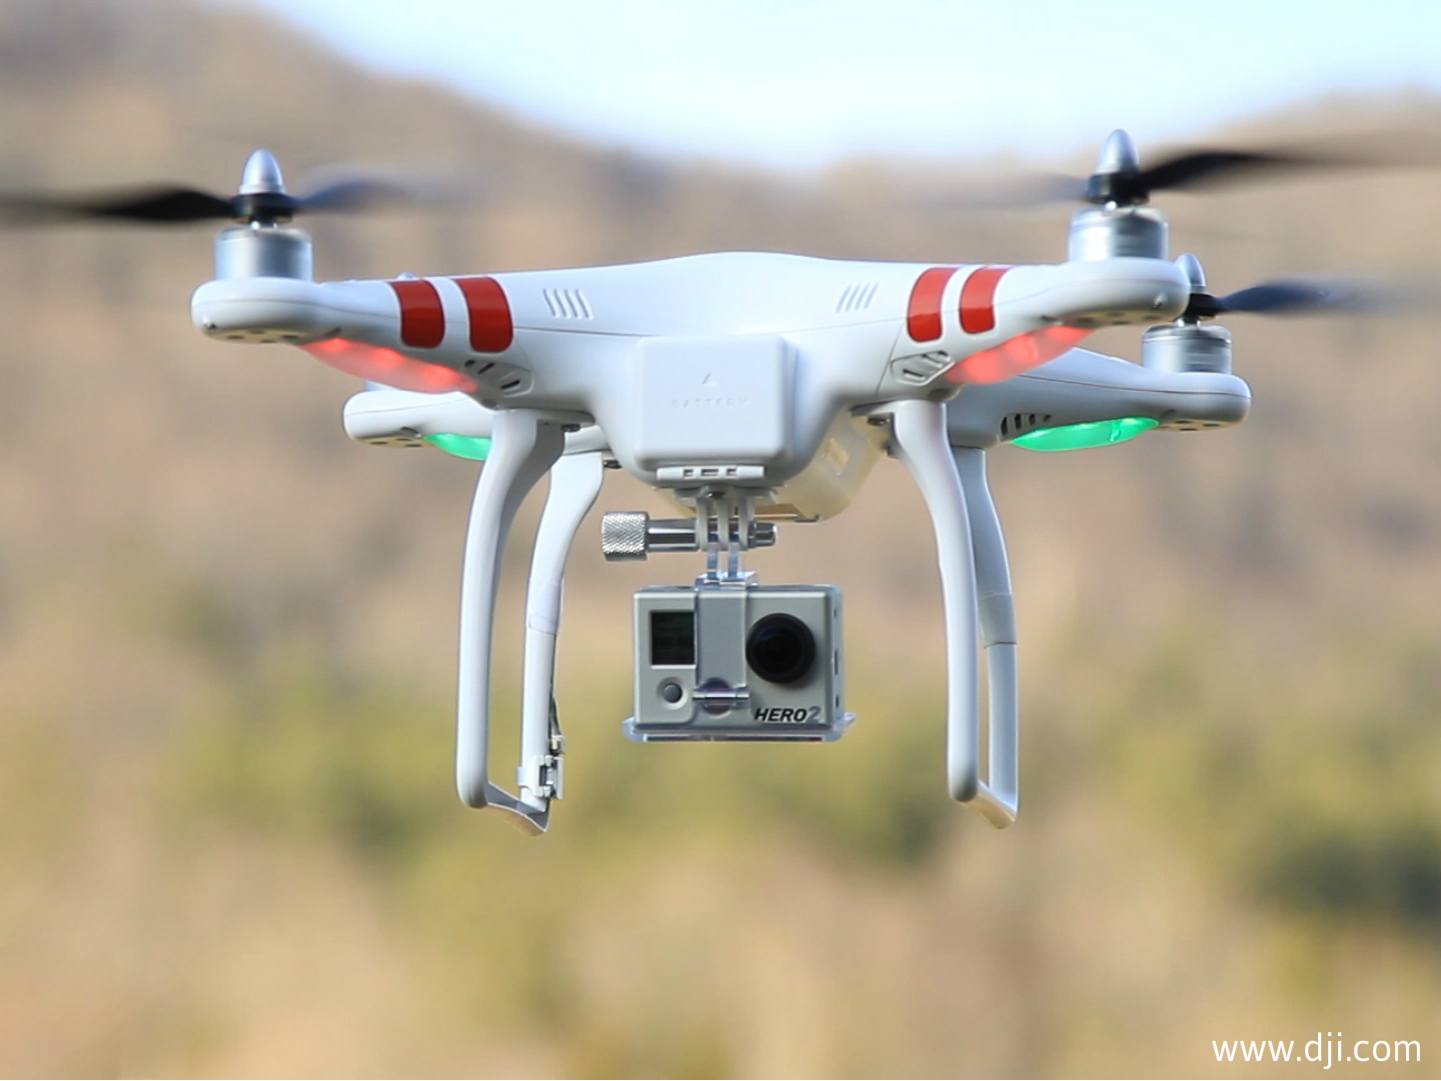 CAAP) for the regulation of unmanned aerial vehicles (UAVs) or drones